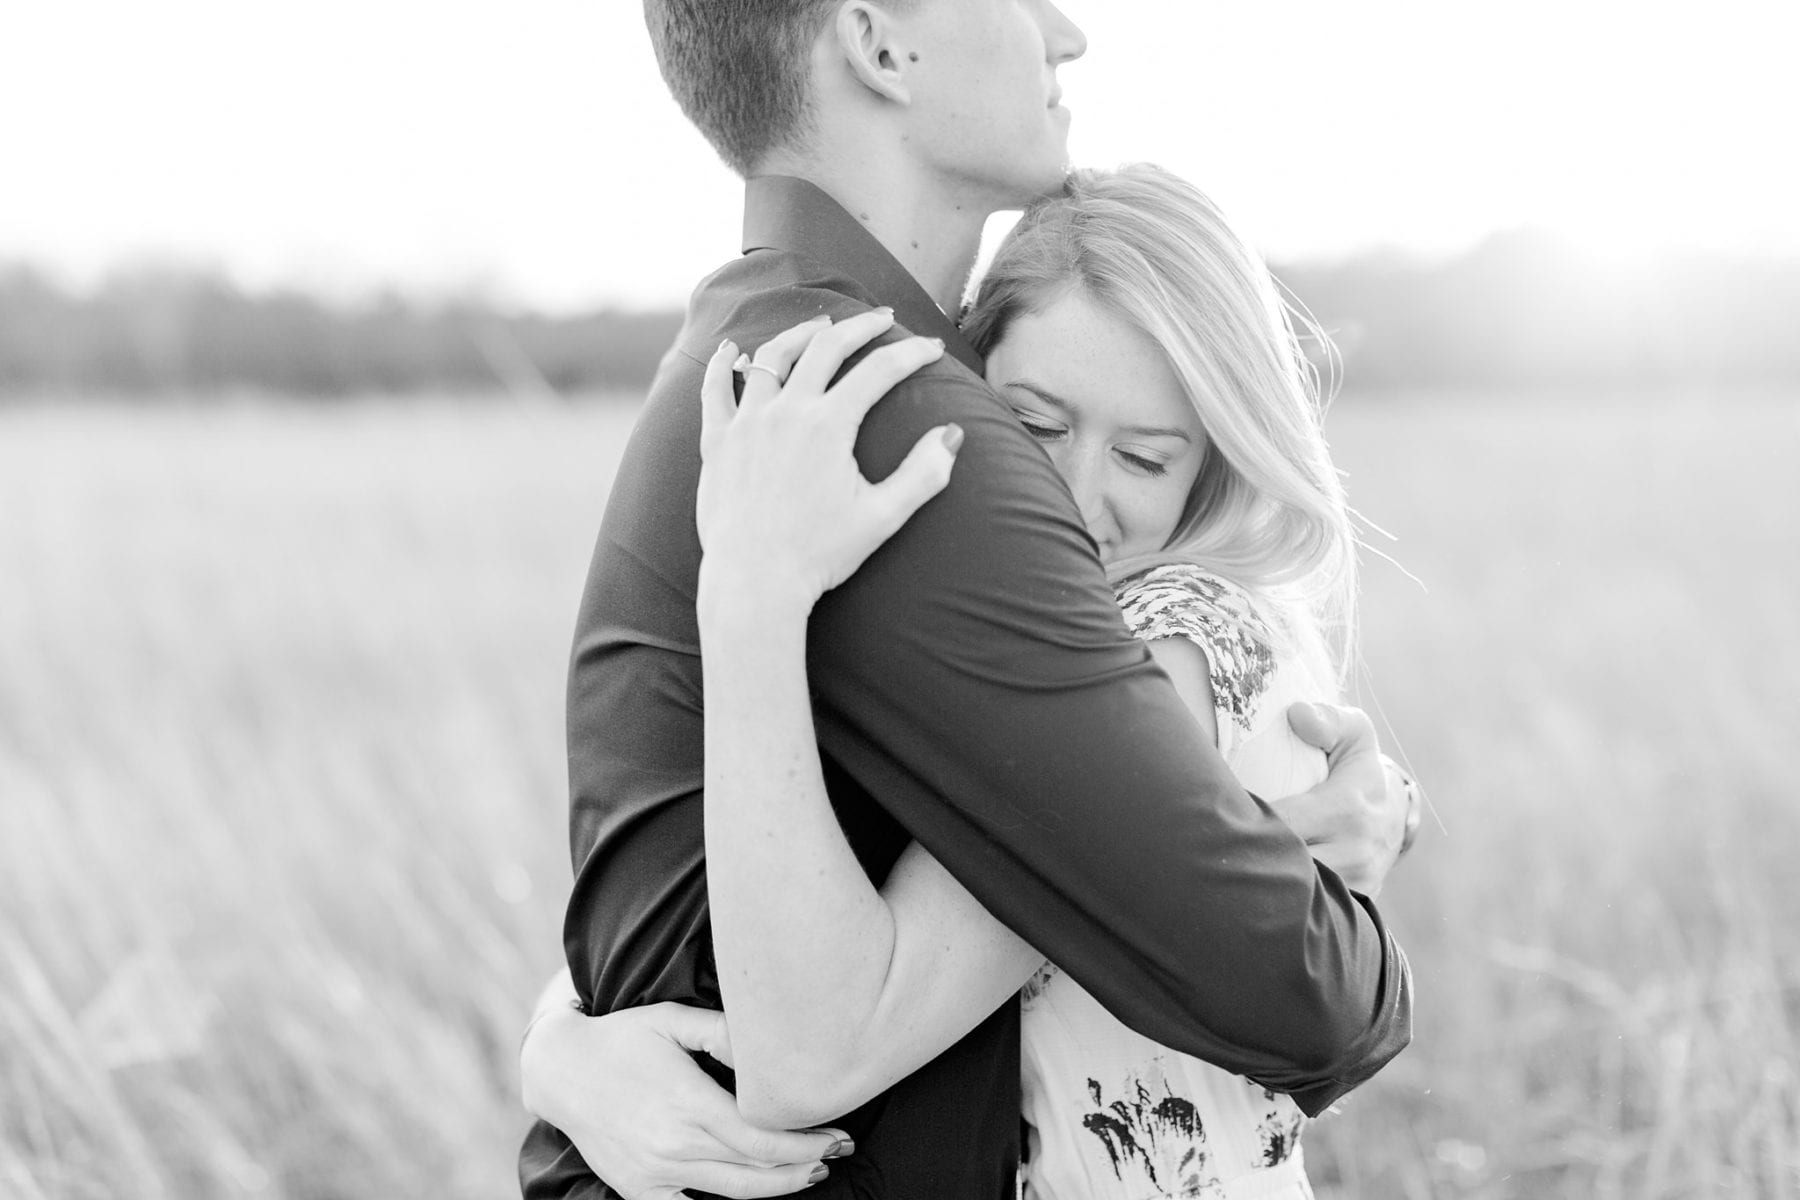 Manassas Battlefield Engagement Session Virginia Wedding Photographer Danielle & Charlie Megan Kelsey Photography-6090-2.jpg